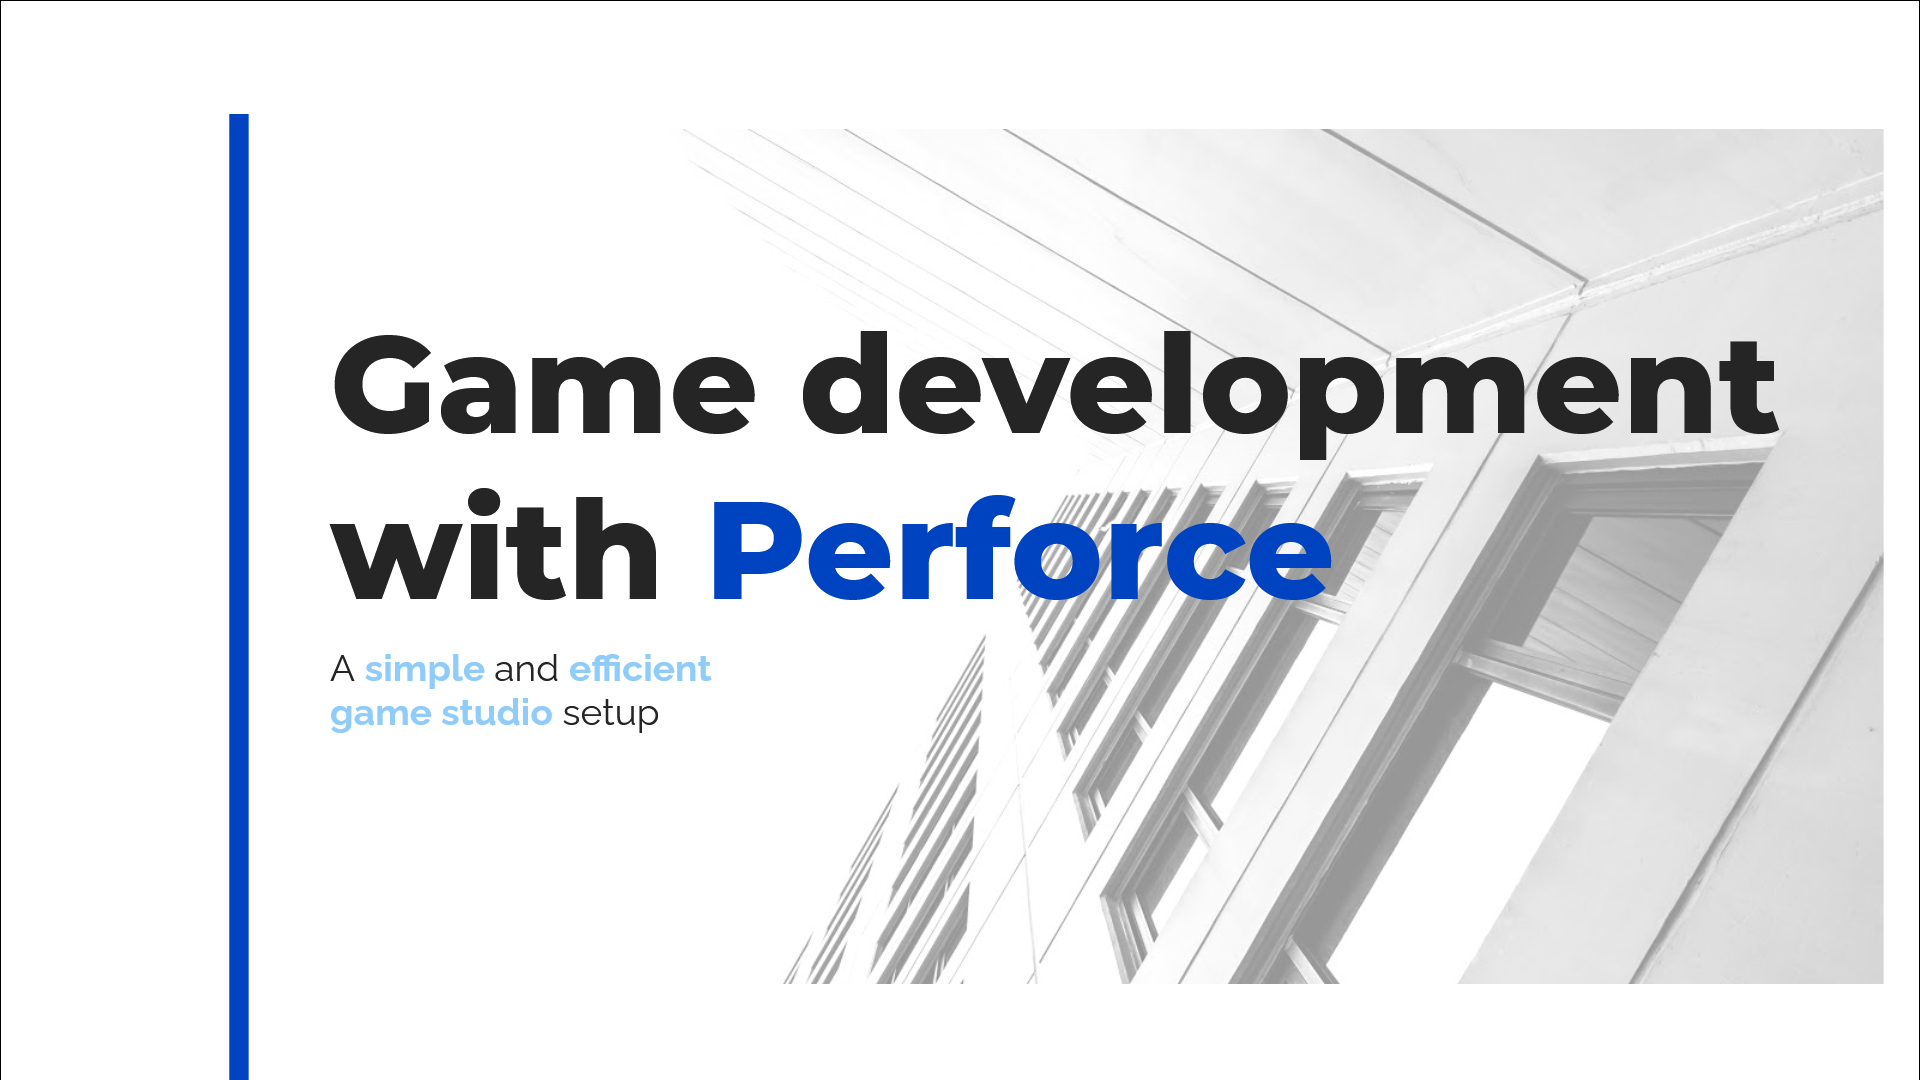 Presentation: Game Development with Perforce